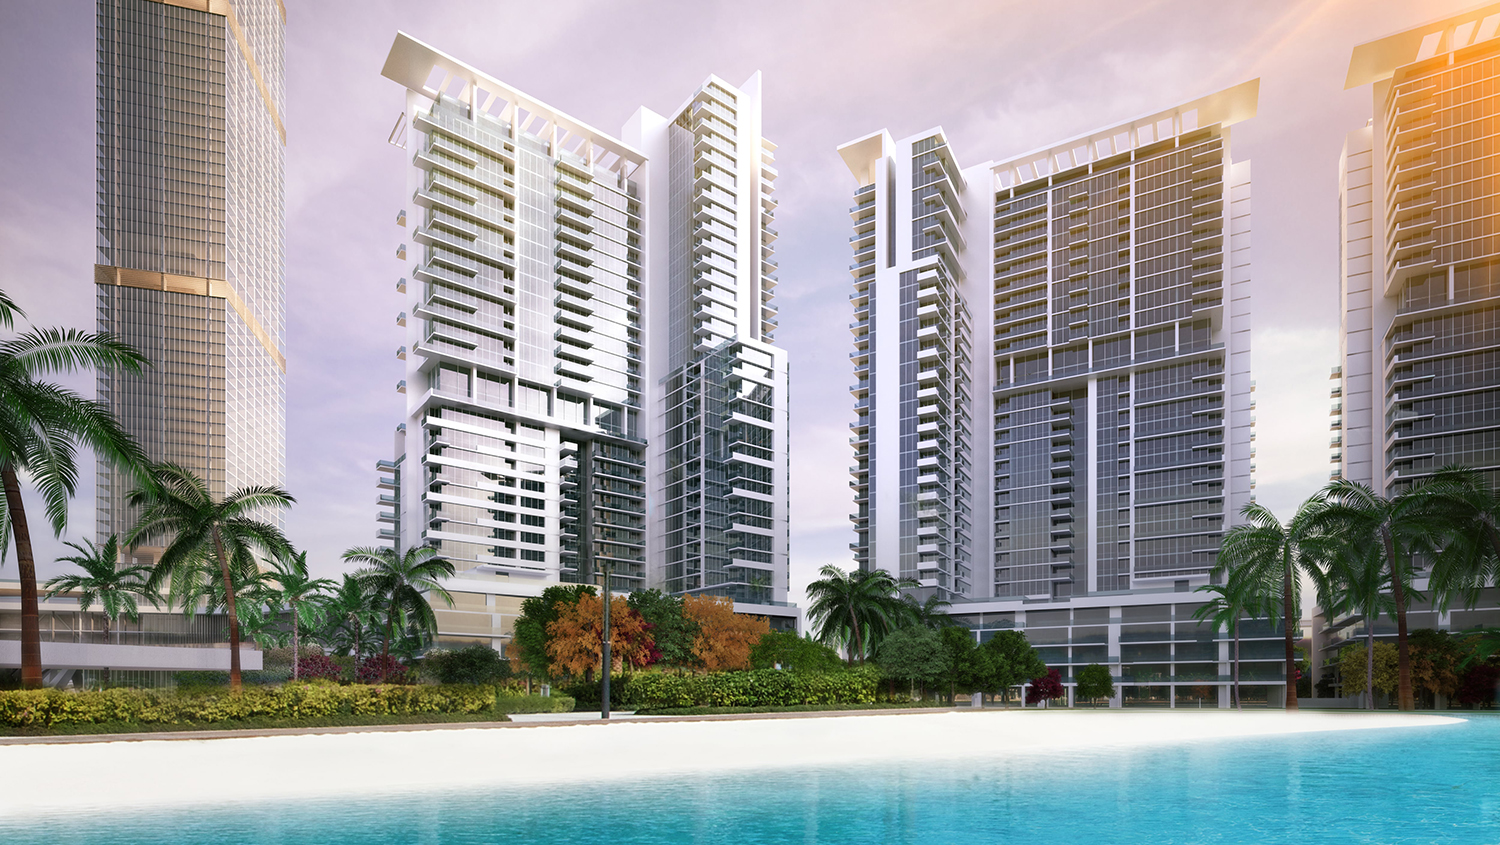 Residential Towers by Quezada Architecture (Fred Quezada, Cecilia Quezada, Ed Tingley)